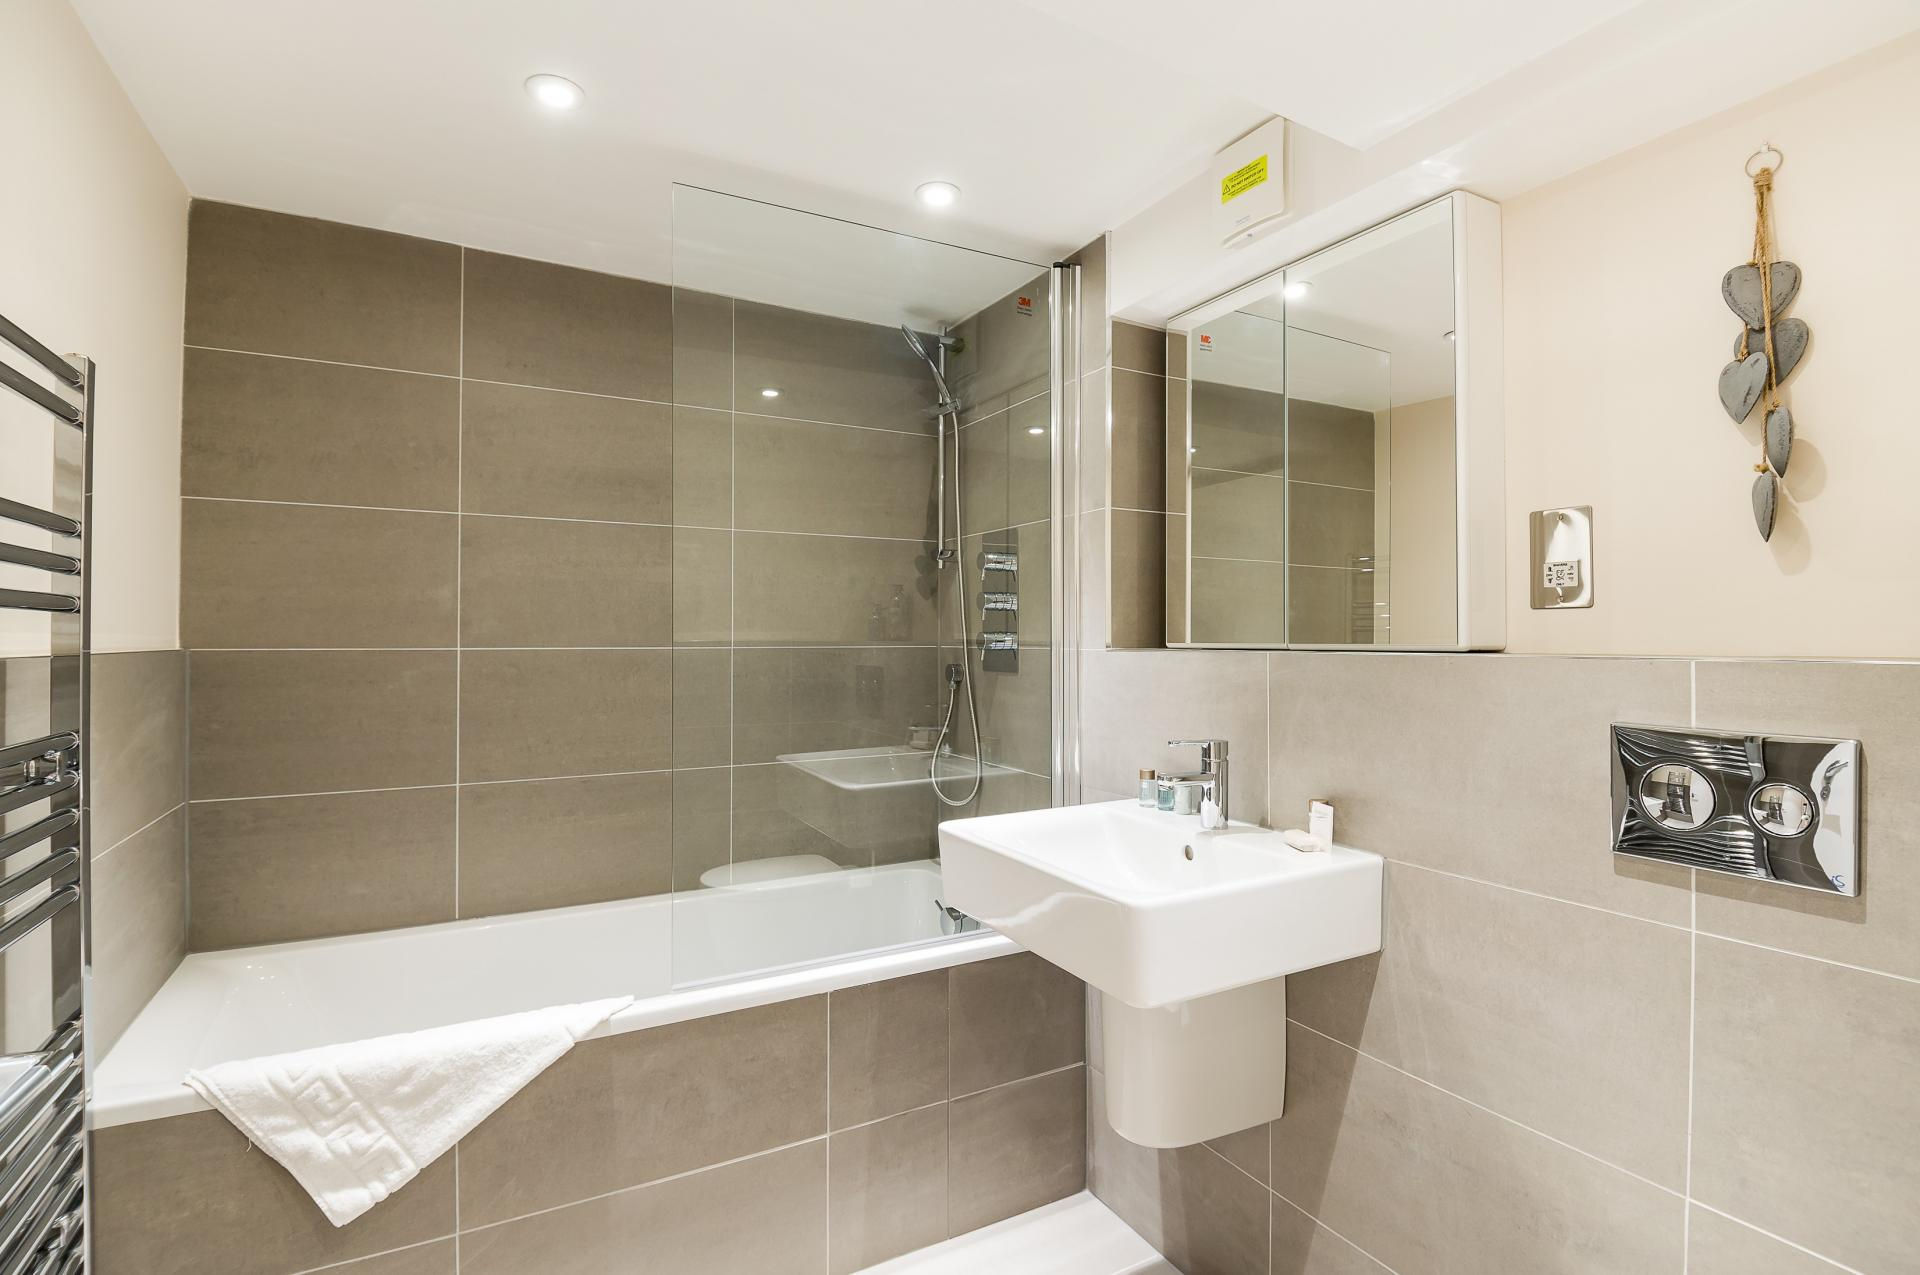 Bathroom at Flying Butler Vincent Square Apartments, Victoria, London - Citybase Apartments